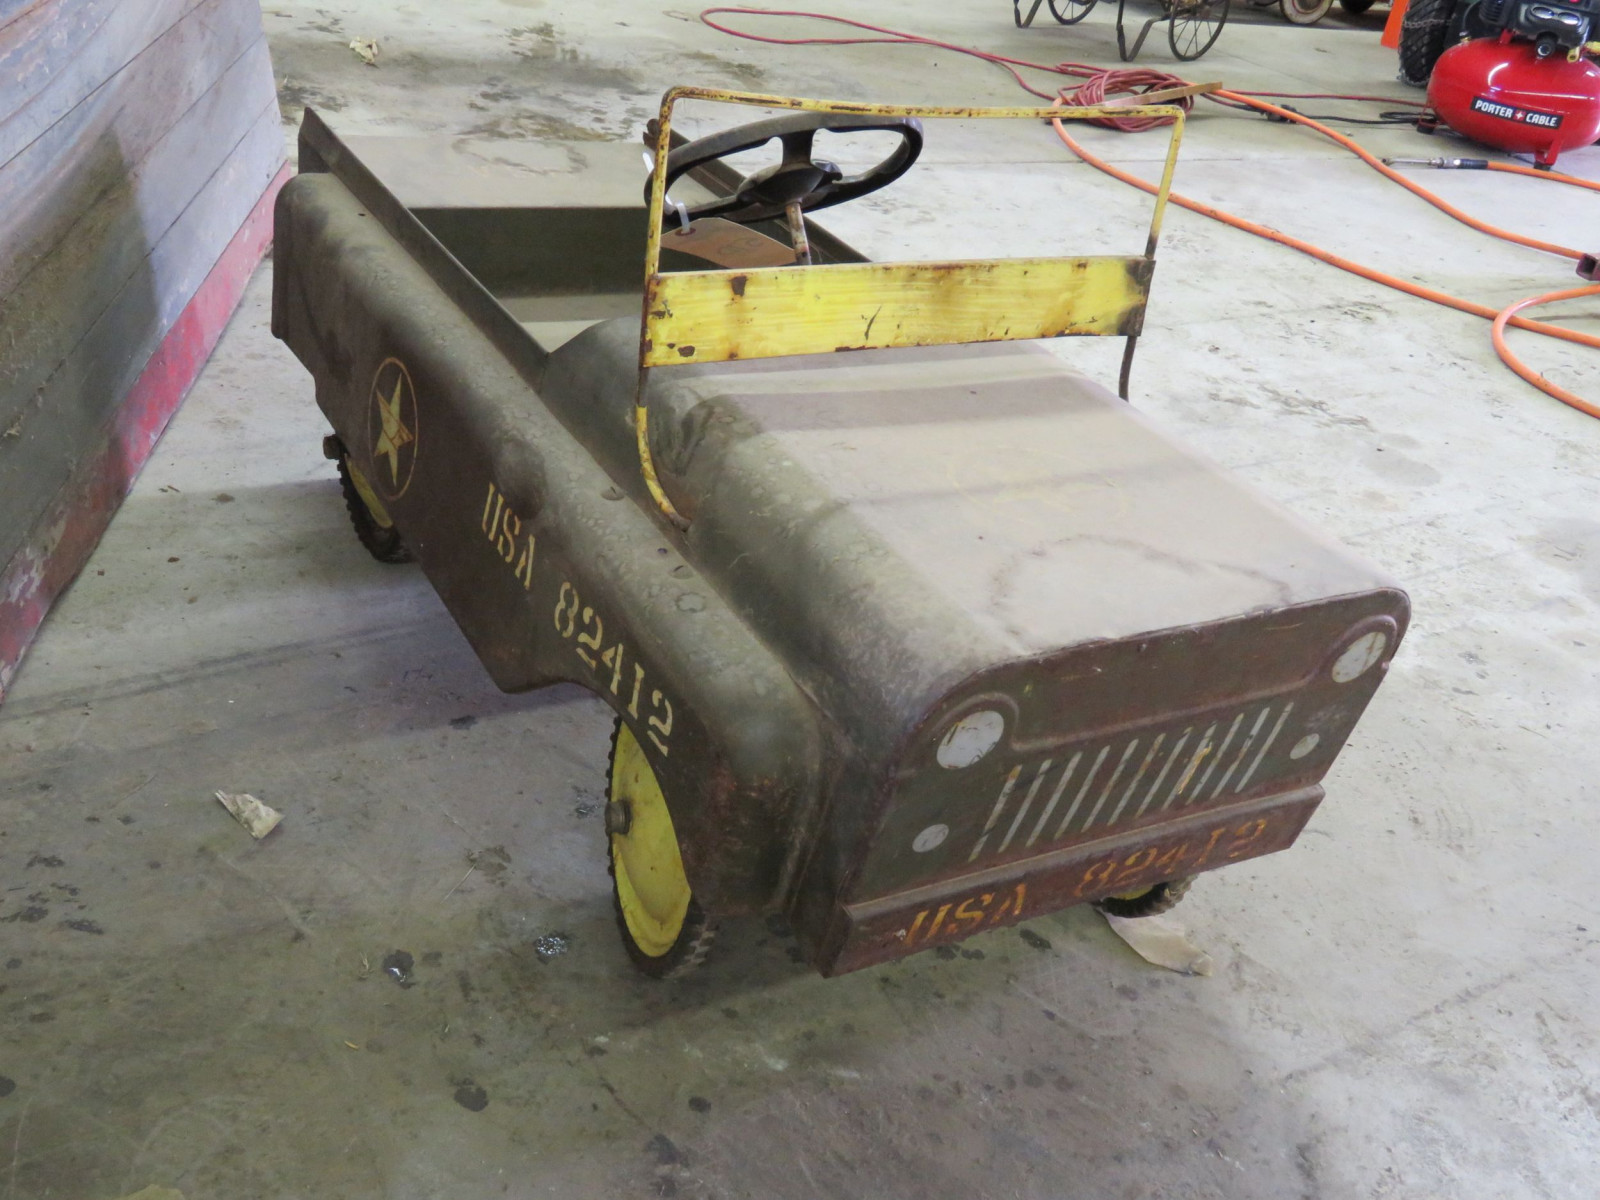 Vintage Garton Military Jeep Pedal Car for restore - Image 3